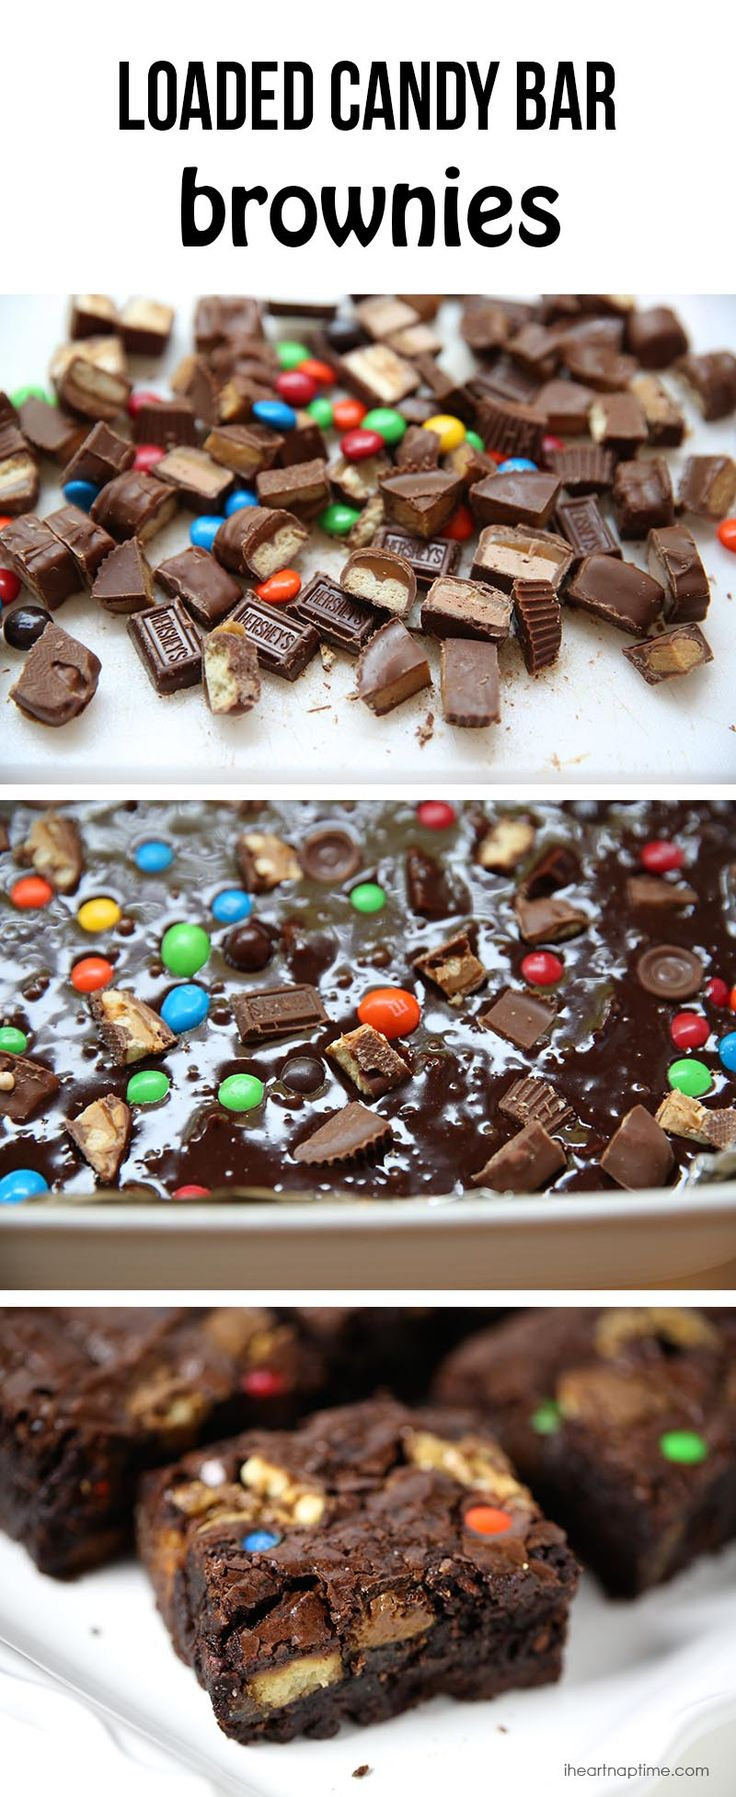 Loaded candy bar brownies on iheartnaptime.com ... great way to use up leftover Halloween candy! #chocolate #recipes